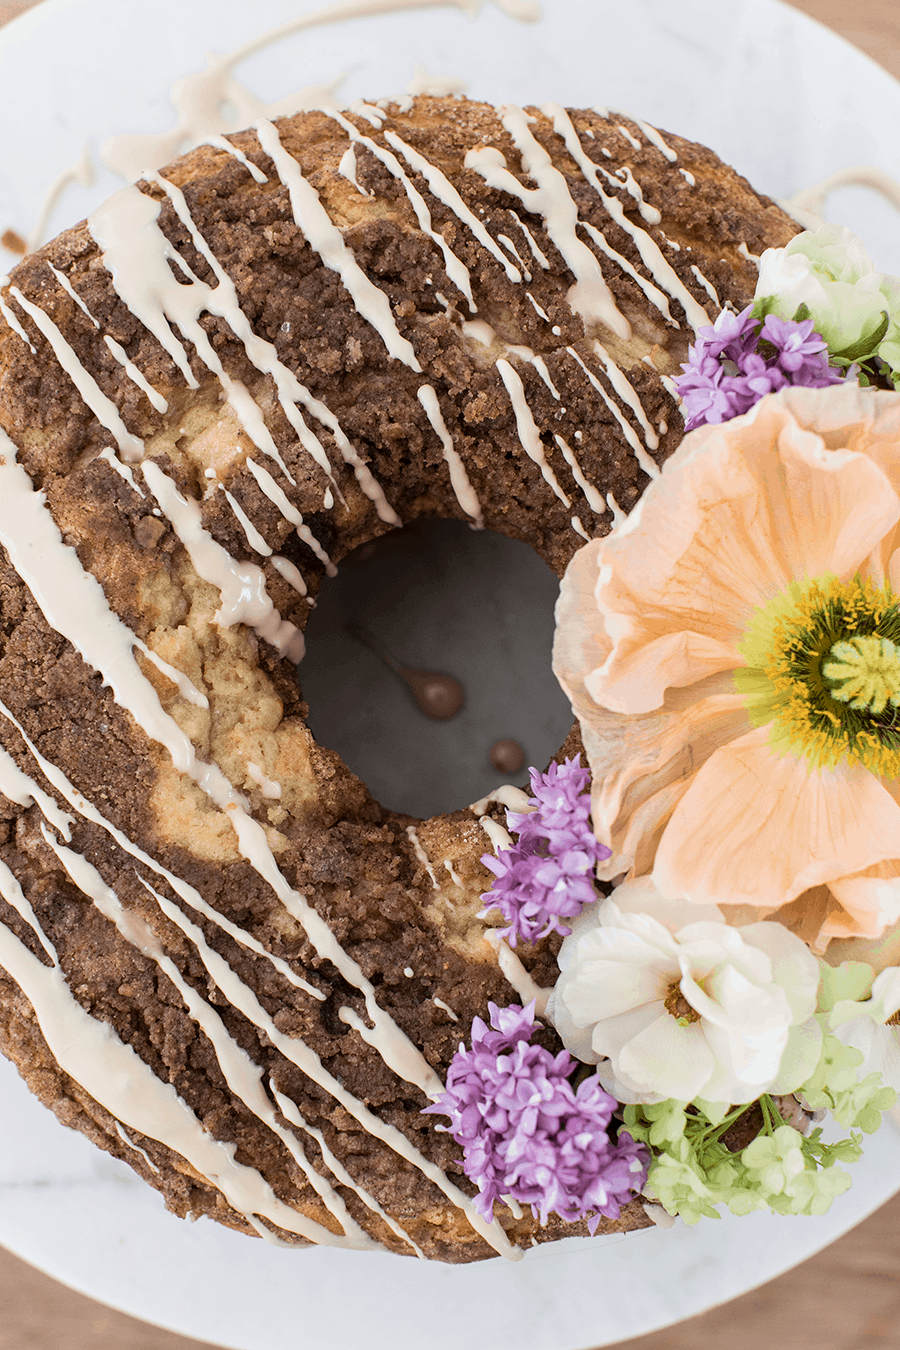 Coffee cake with glaze and garnished with flowers.